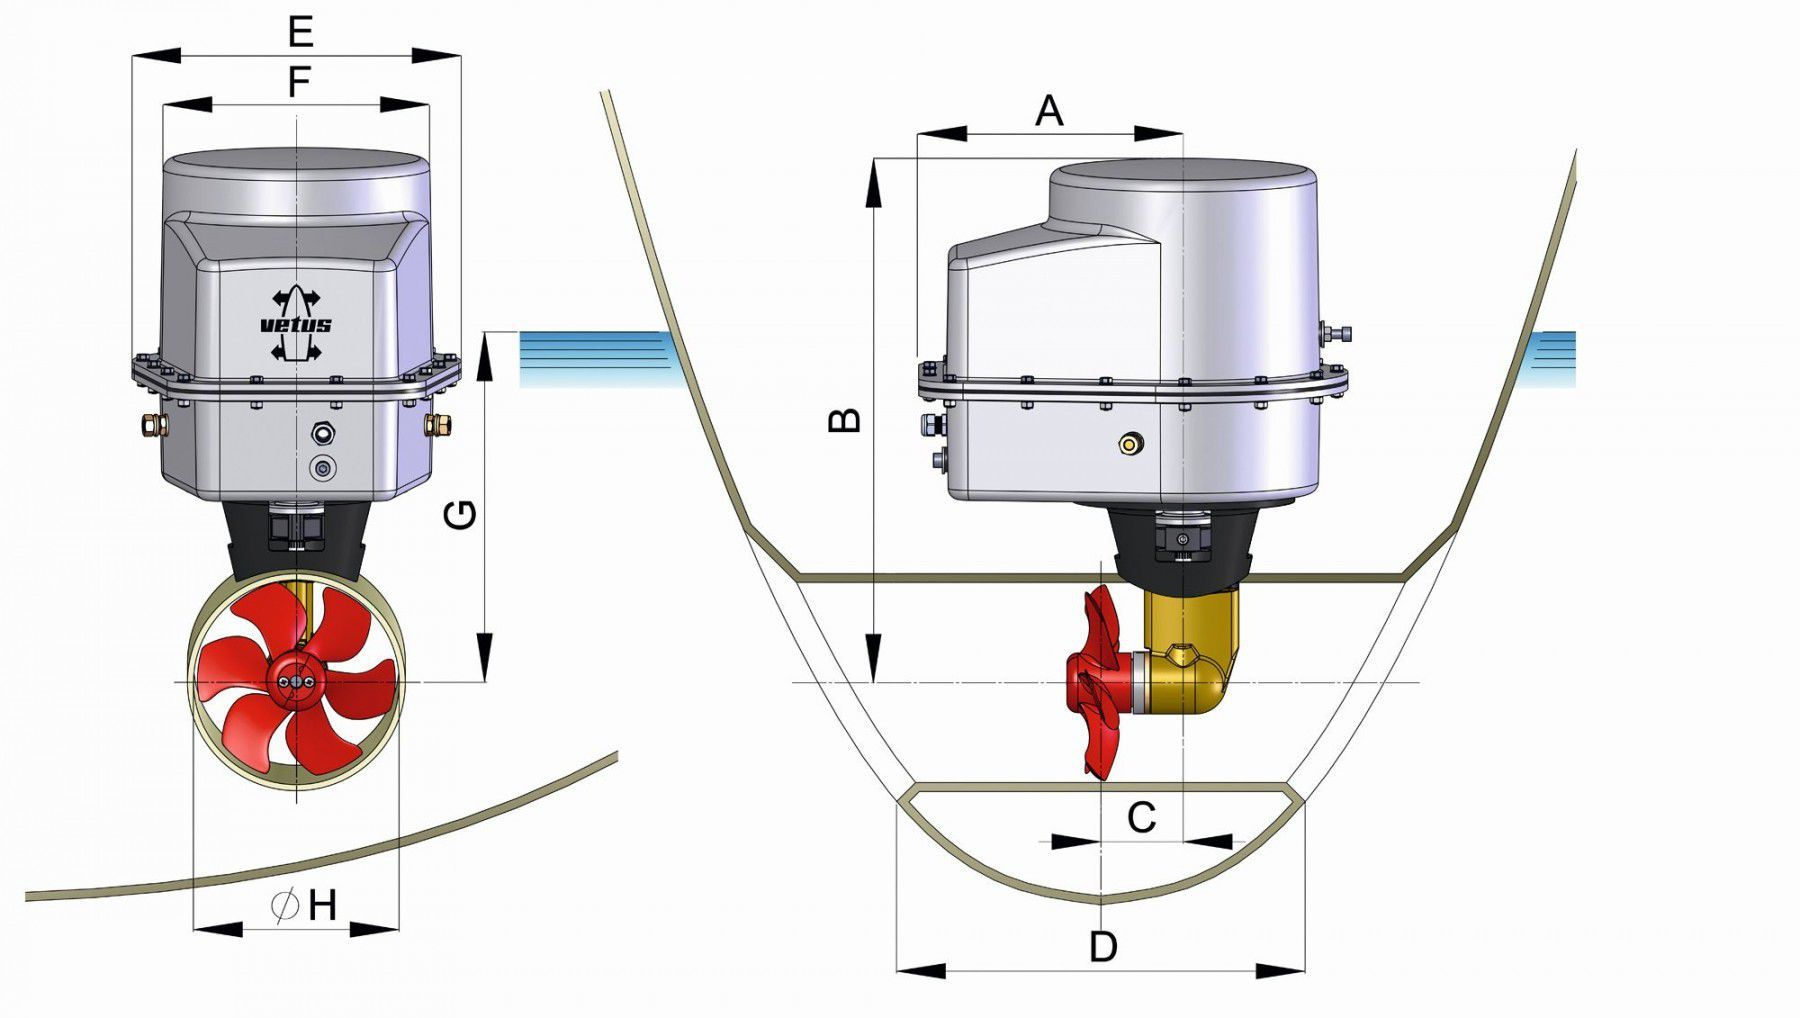 Vetus Bow Thruster Wiring Diagram from static-resources.imageservice.cloud